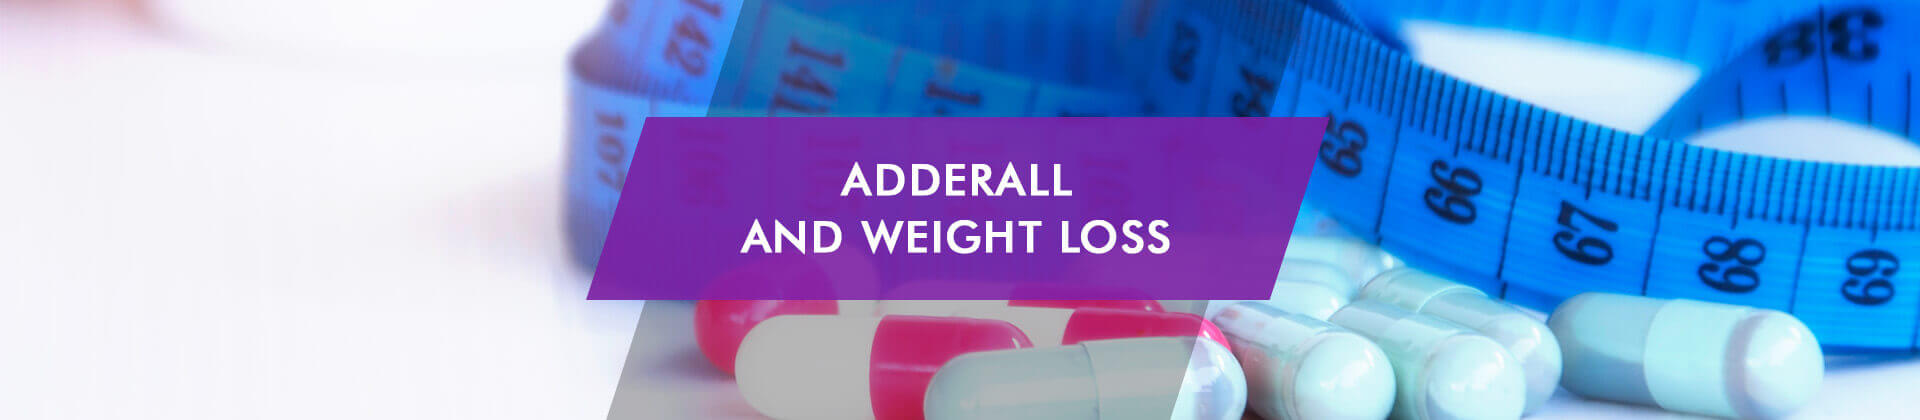 Adderall and Weight Loss: Do Amphetamines Make You Lose Weight?